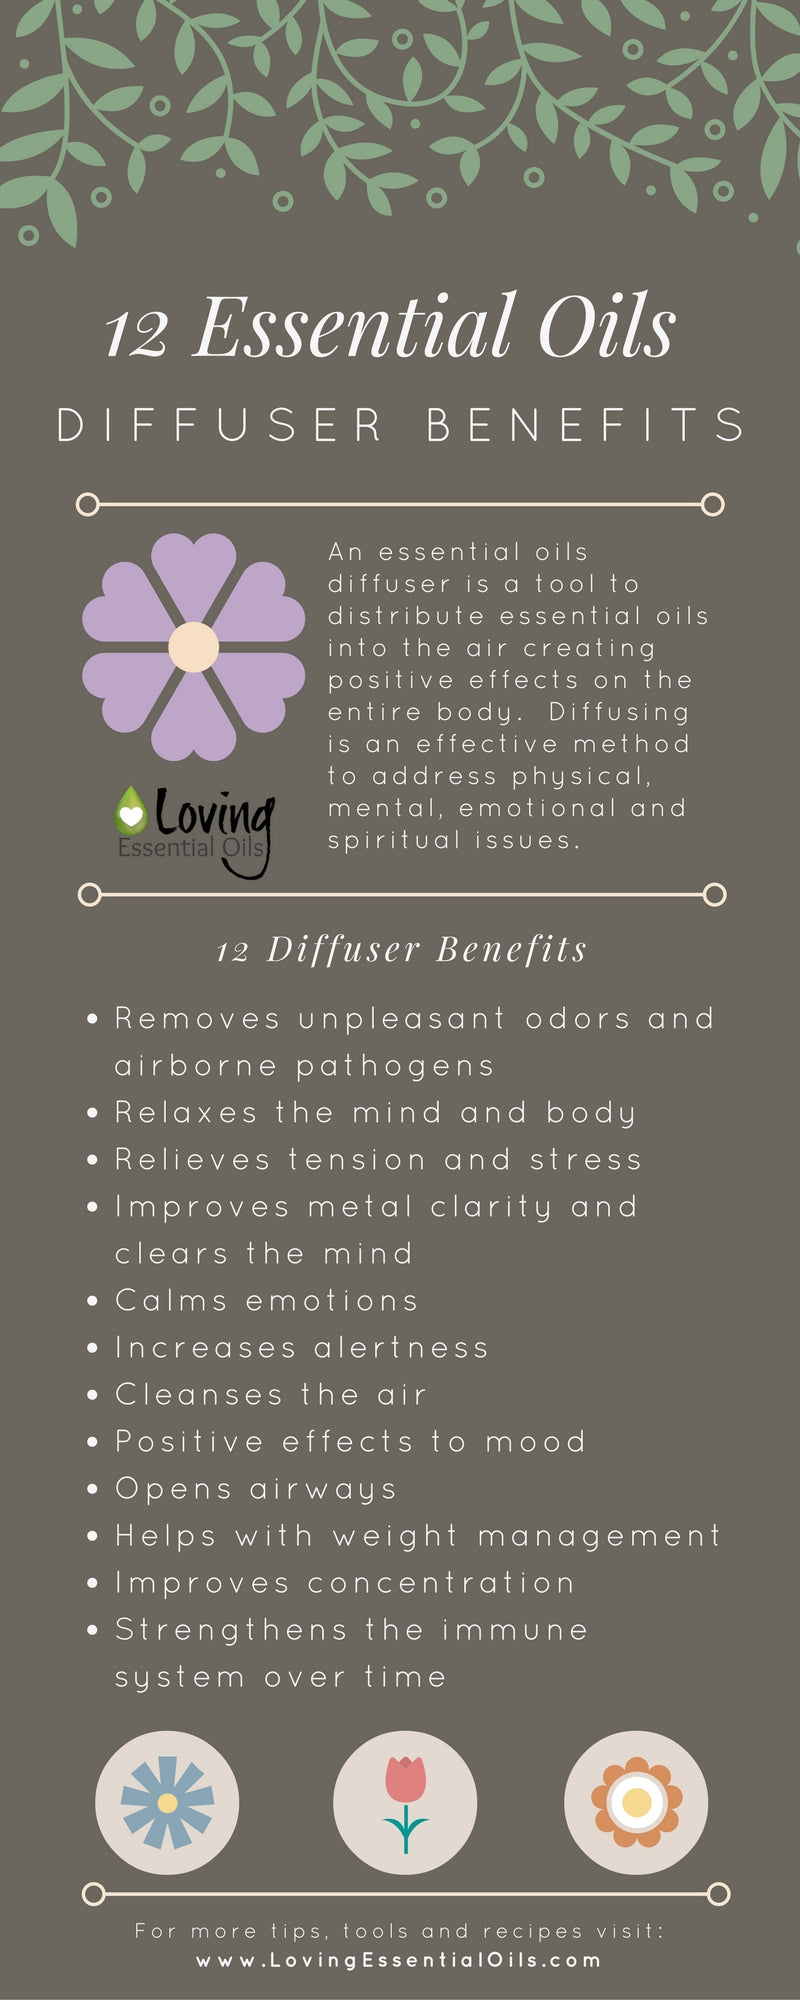 12 Essential Oil Diffuser Benefits Infographic - Learn How Beneficial Aromatherapy Can Be